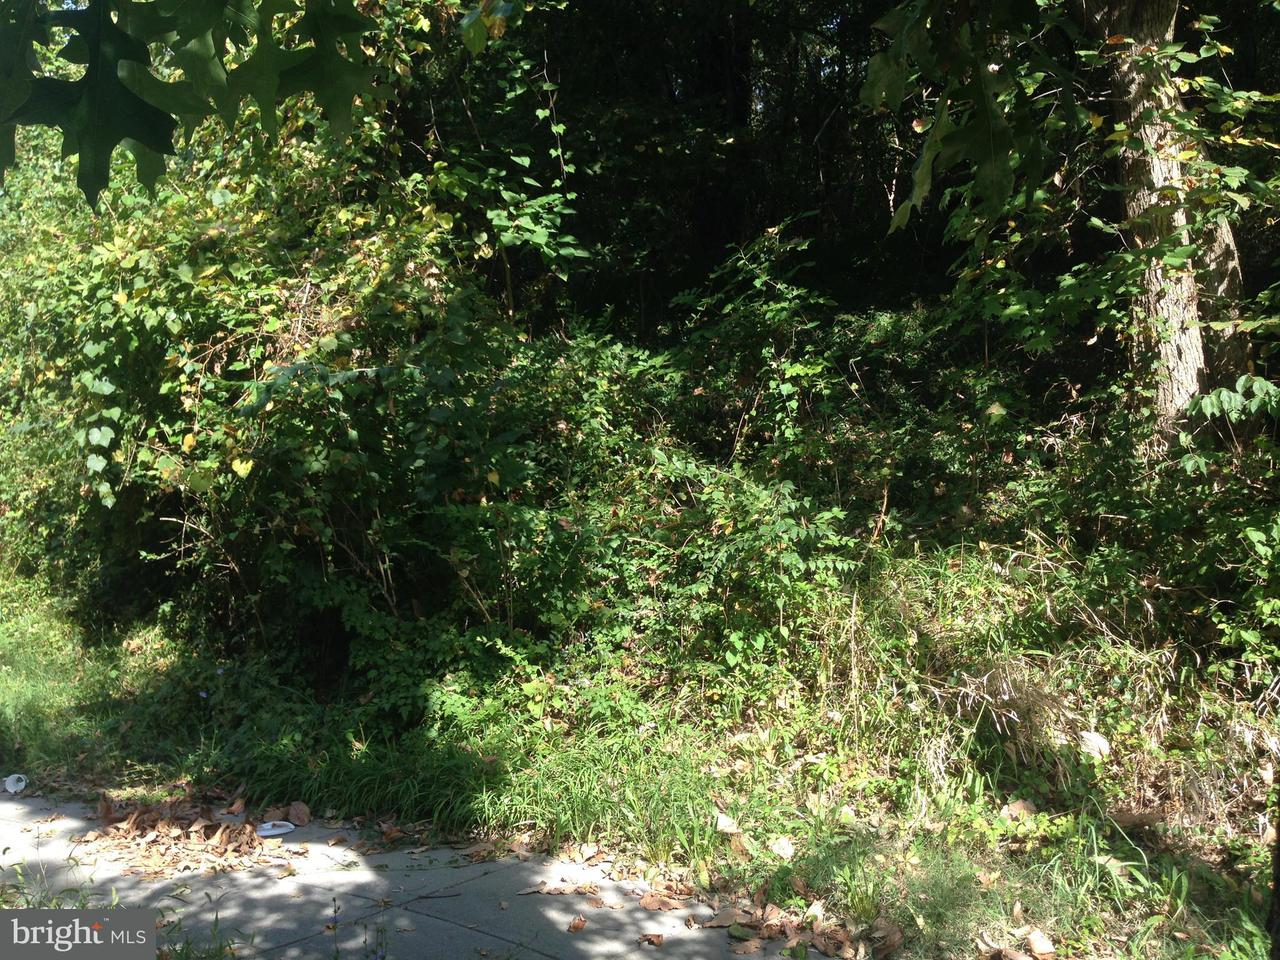 Land for Sale at 2547 Pomeroy Rd Se 2547 Pomeroy Rd Se Washington, District Of Columbia 20020 United States